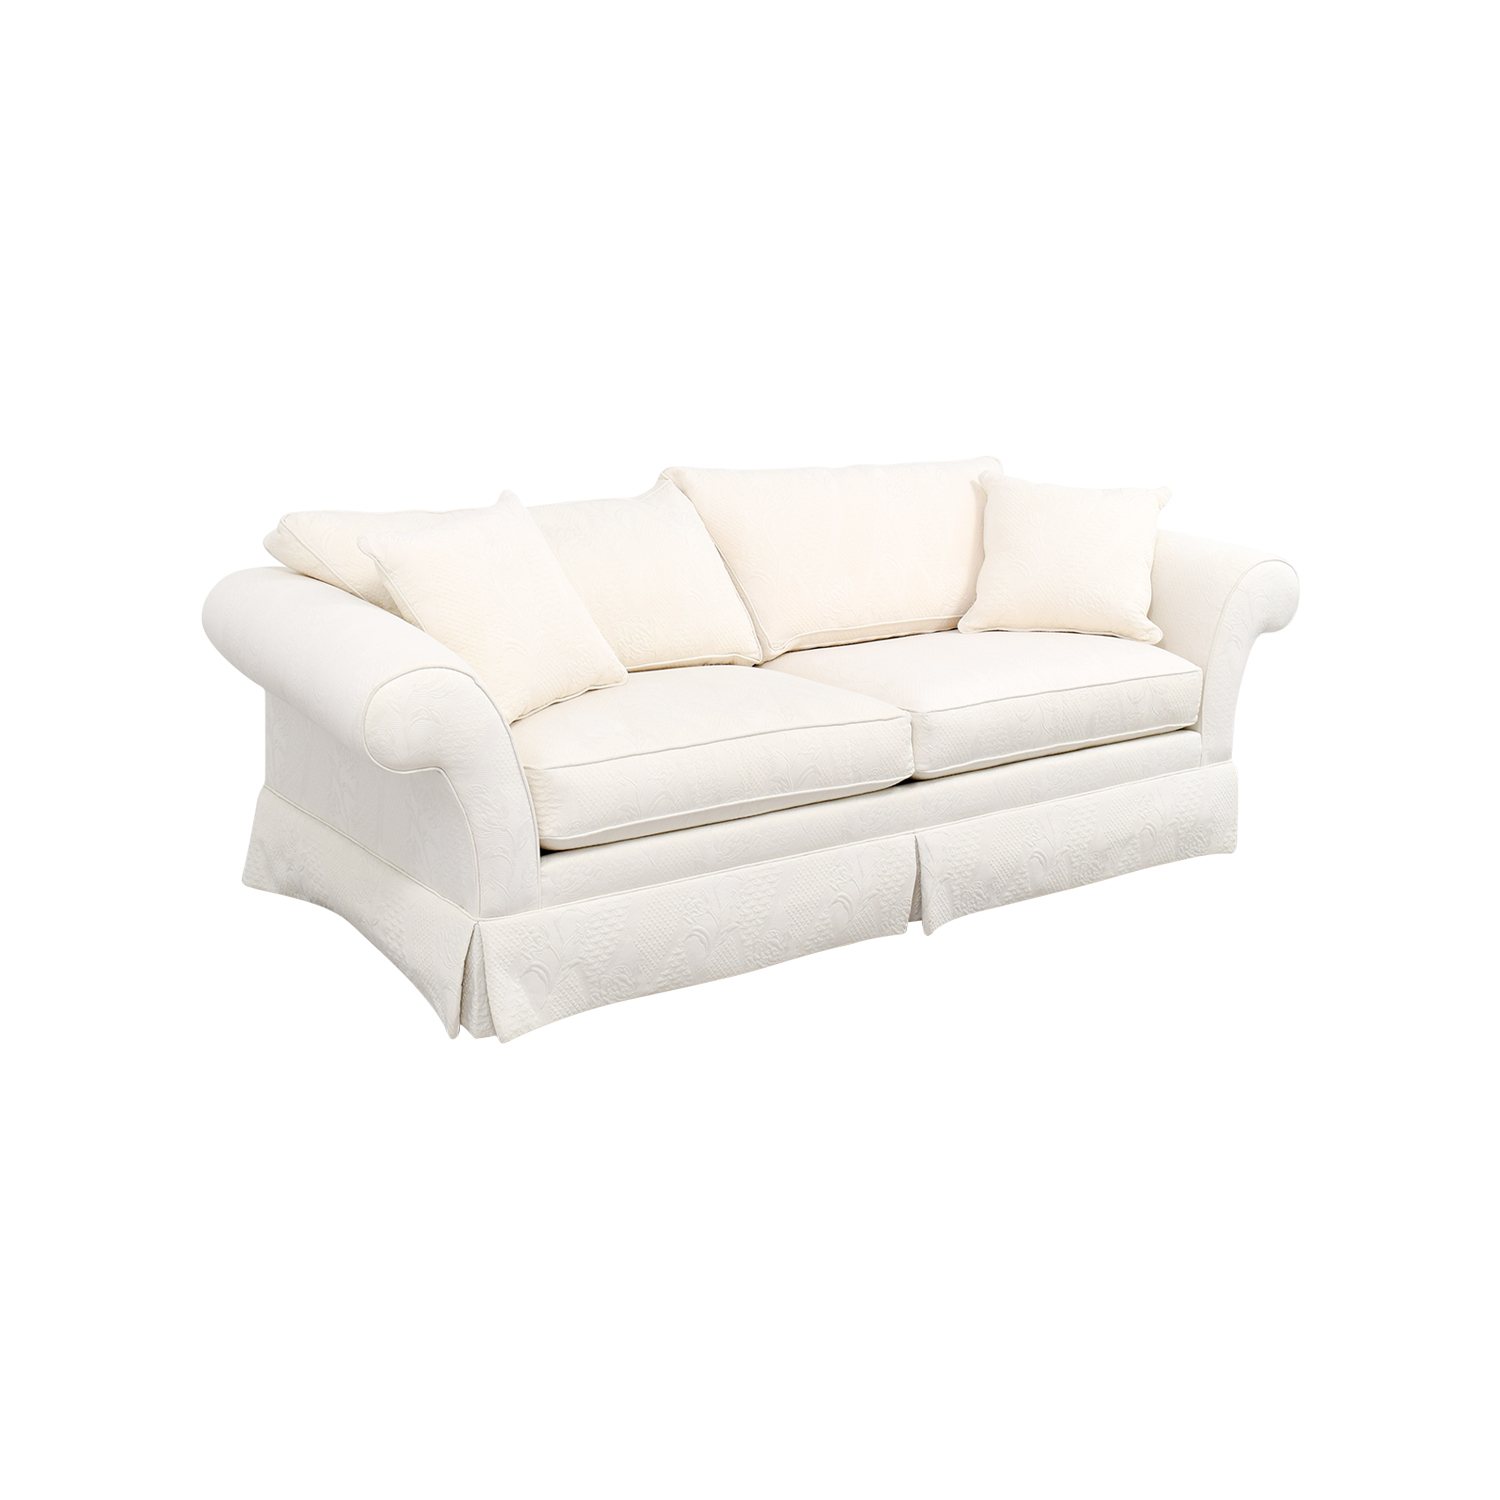 90 Off Ethan Allen Ethan Allen Rolled Arm White Sofa